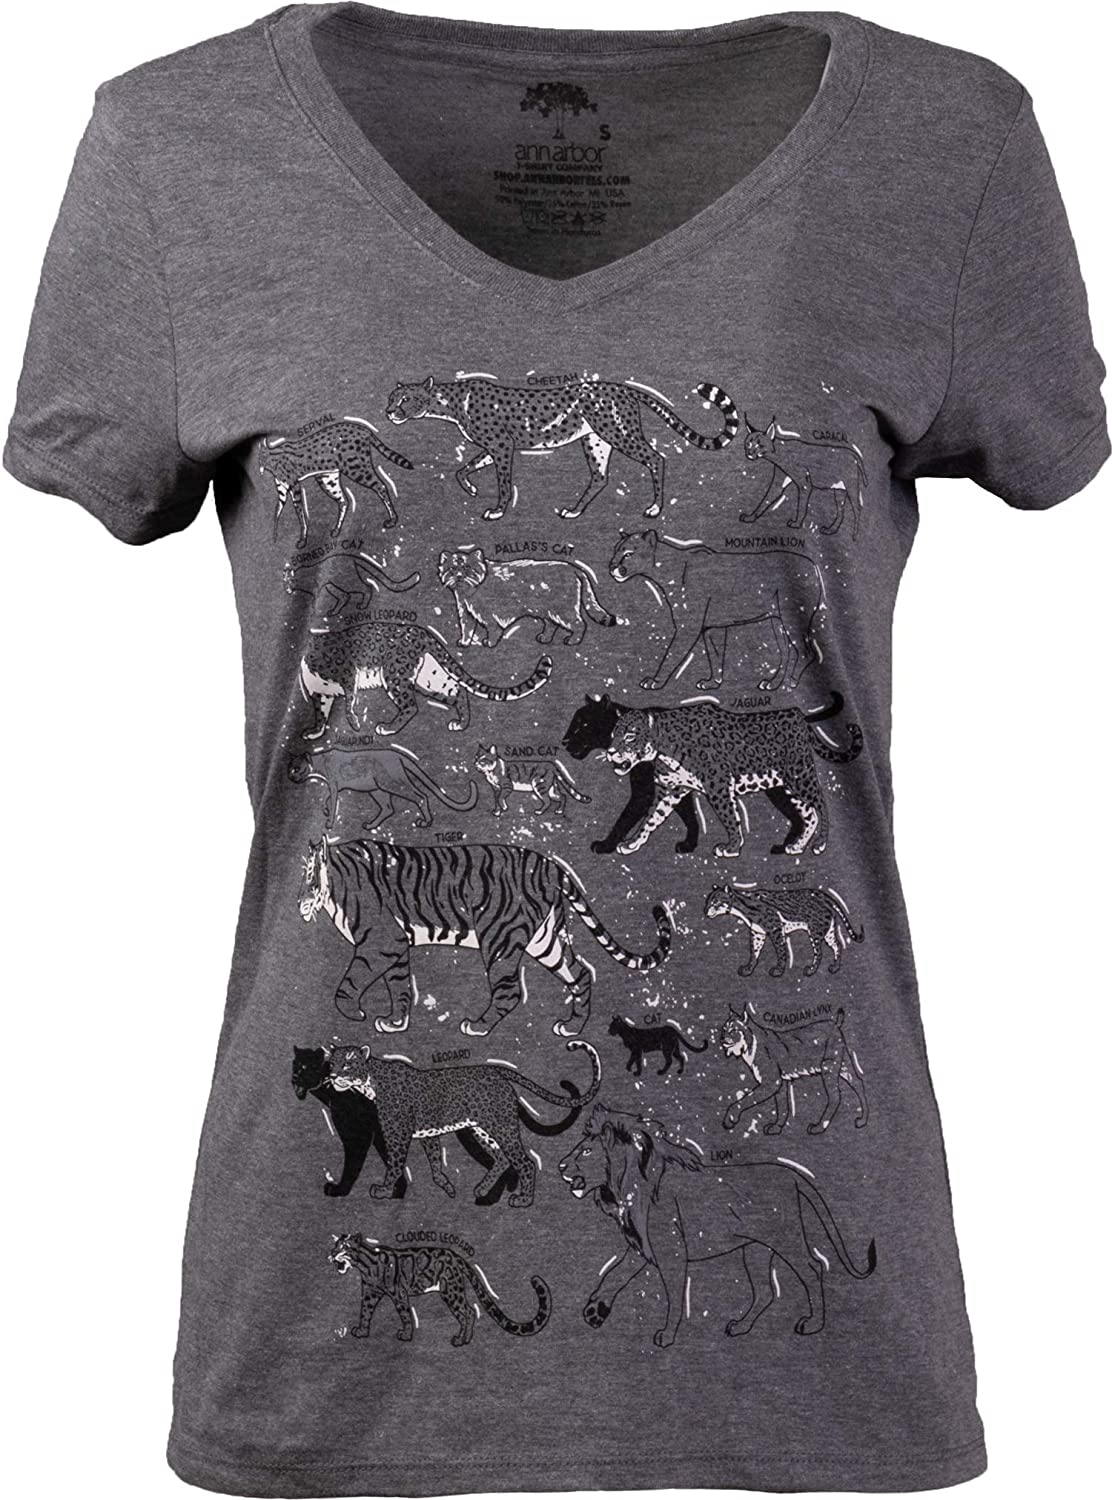 Big Cats | Lion Tiger Cheetah Jaguar Cougar Leopard Lynx Feline Fan Cat Mom V-Neck Graphic T-Shirt for Women